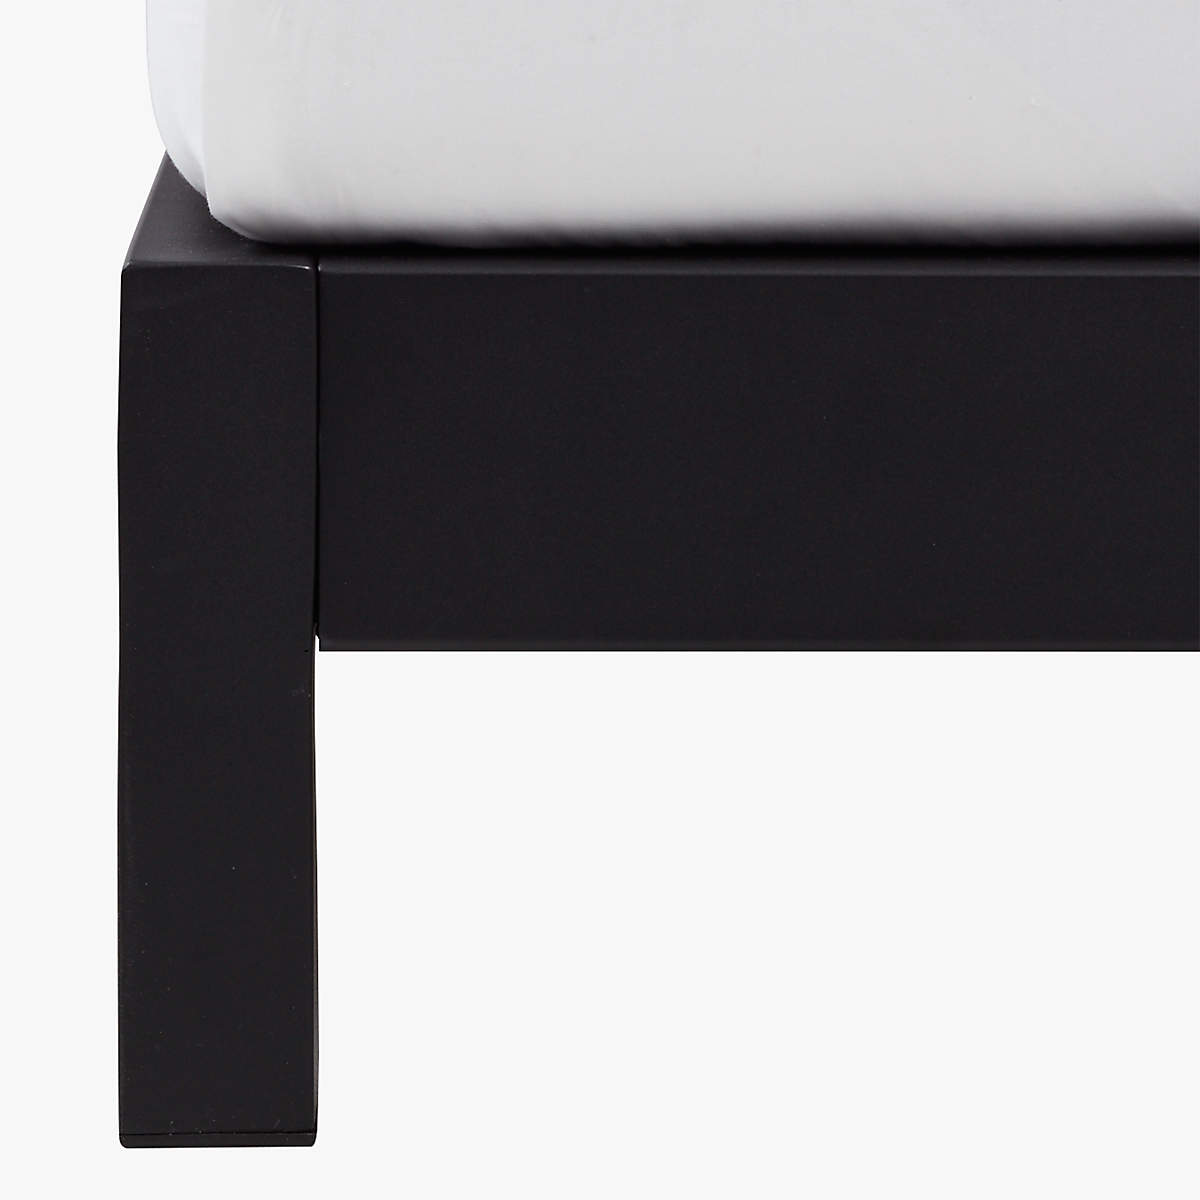 Simple Black Metal Bed Base- image 3 of 3 (Open Larger View)